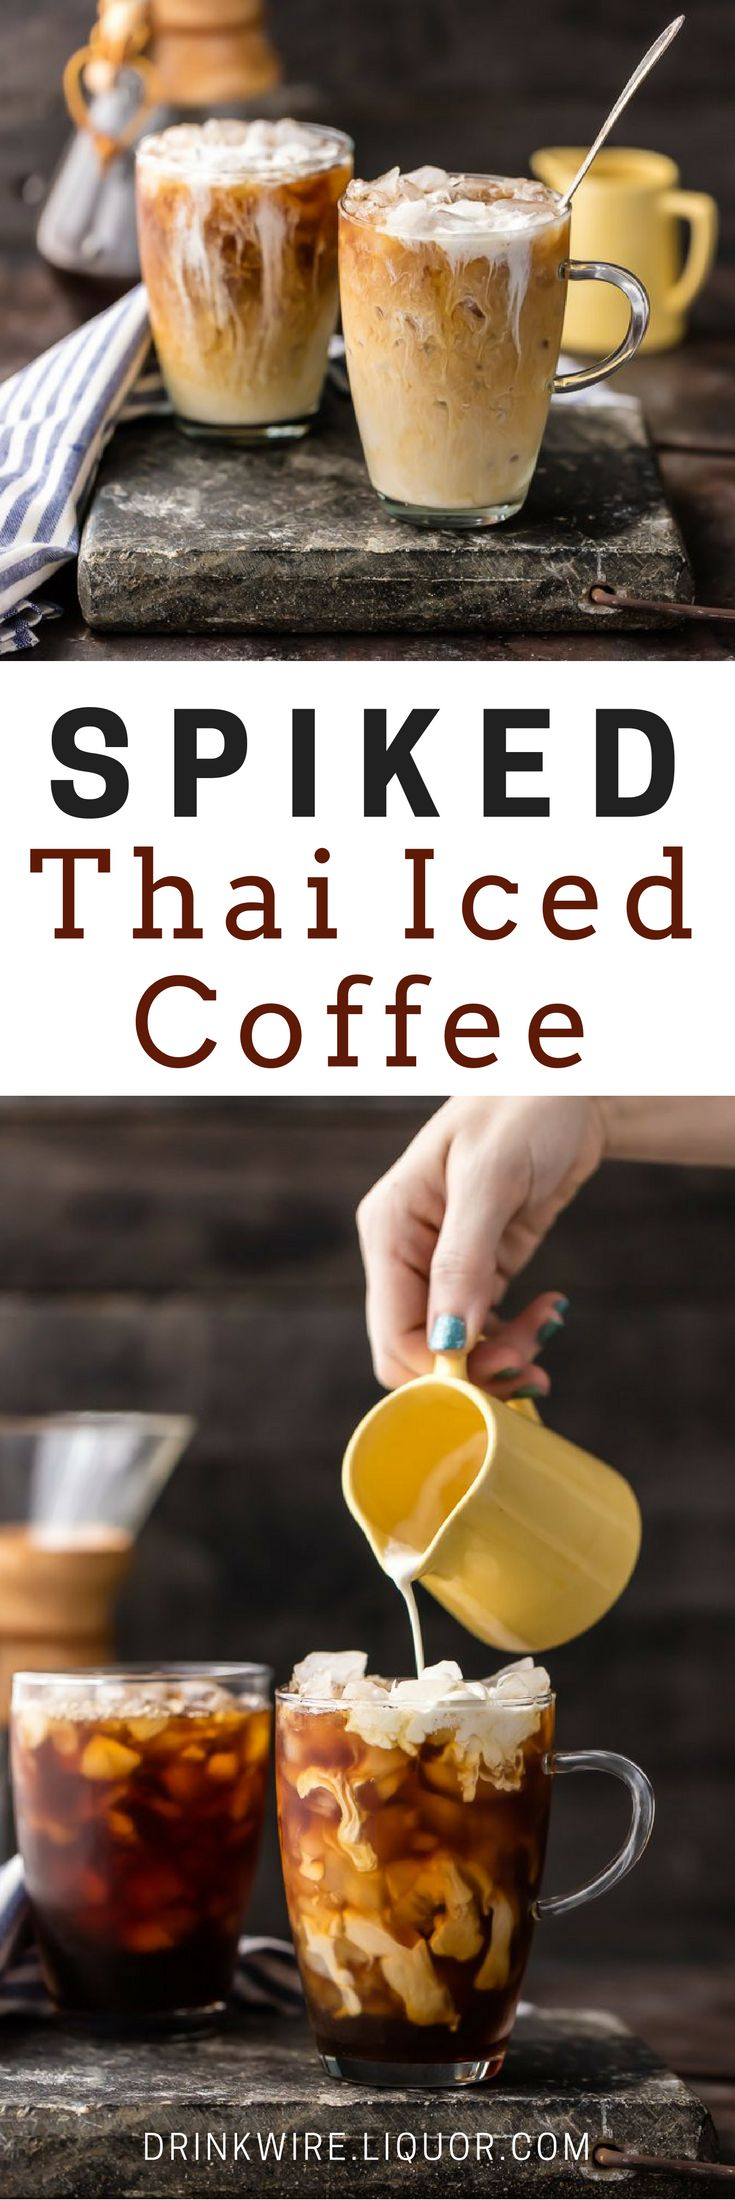 Is there anything more refreshing than in iced coffee? Add some spice and Amaretto and you've got something out of this world! Non-alcoholic version also available for those who want to abstain. This is the perfect pick me up.